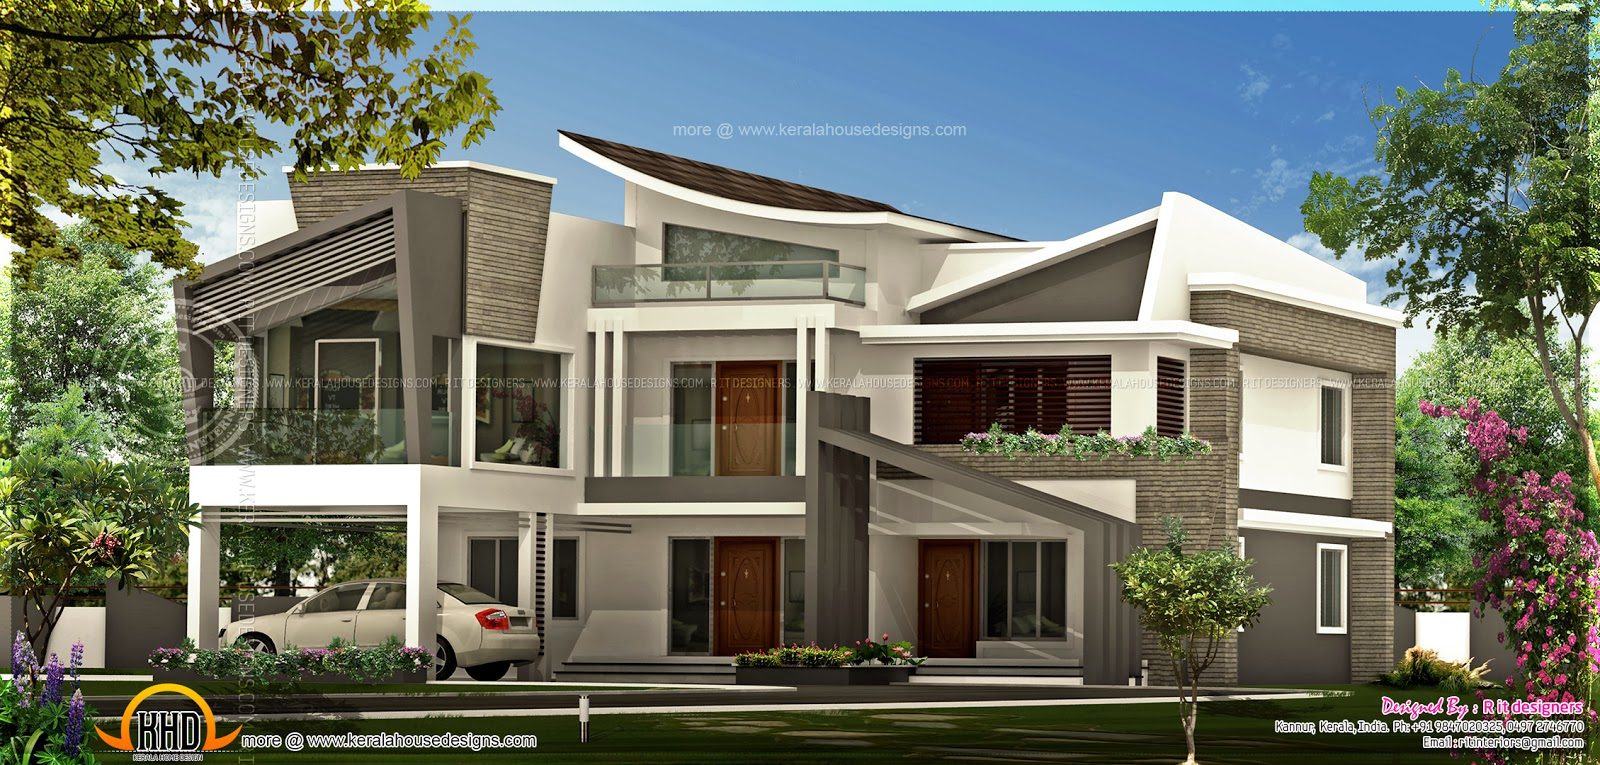 Top 19 photos ideas for unique modern houses home plans for Unique modern house plans